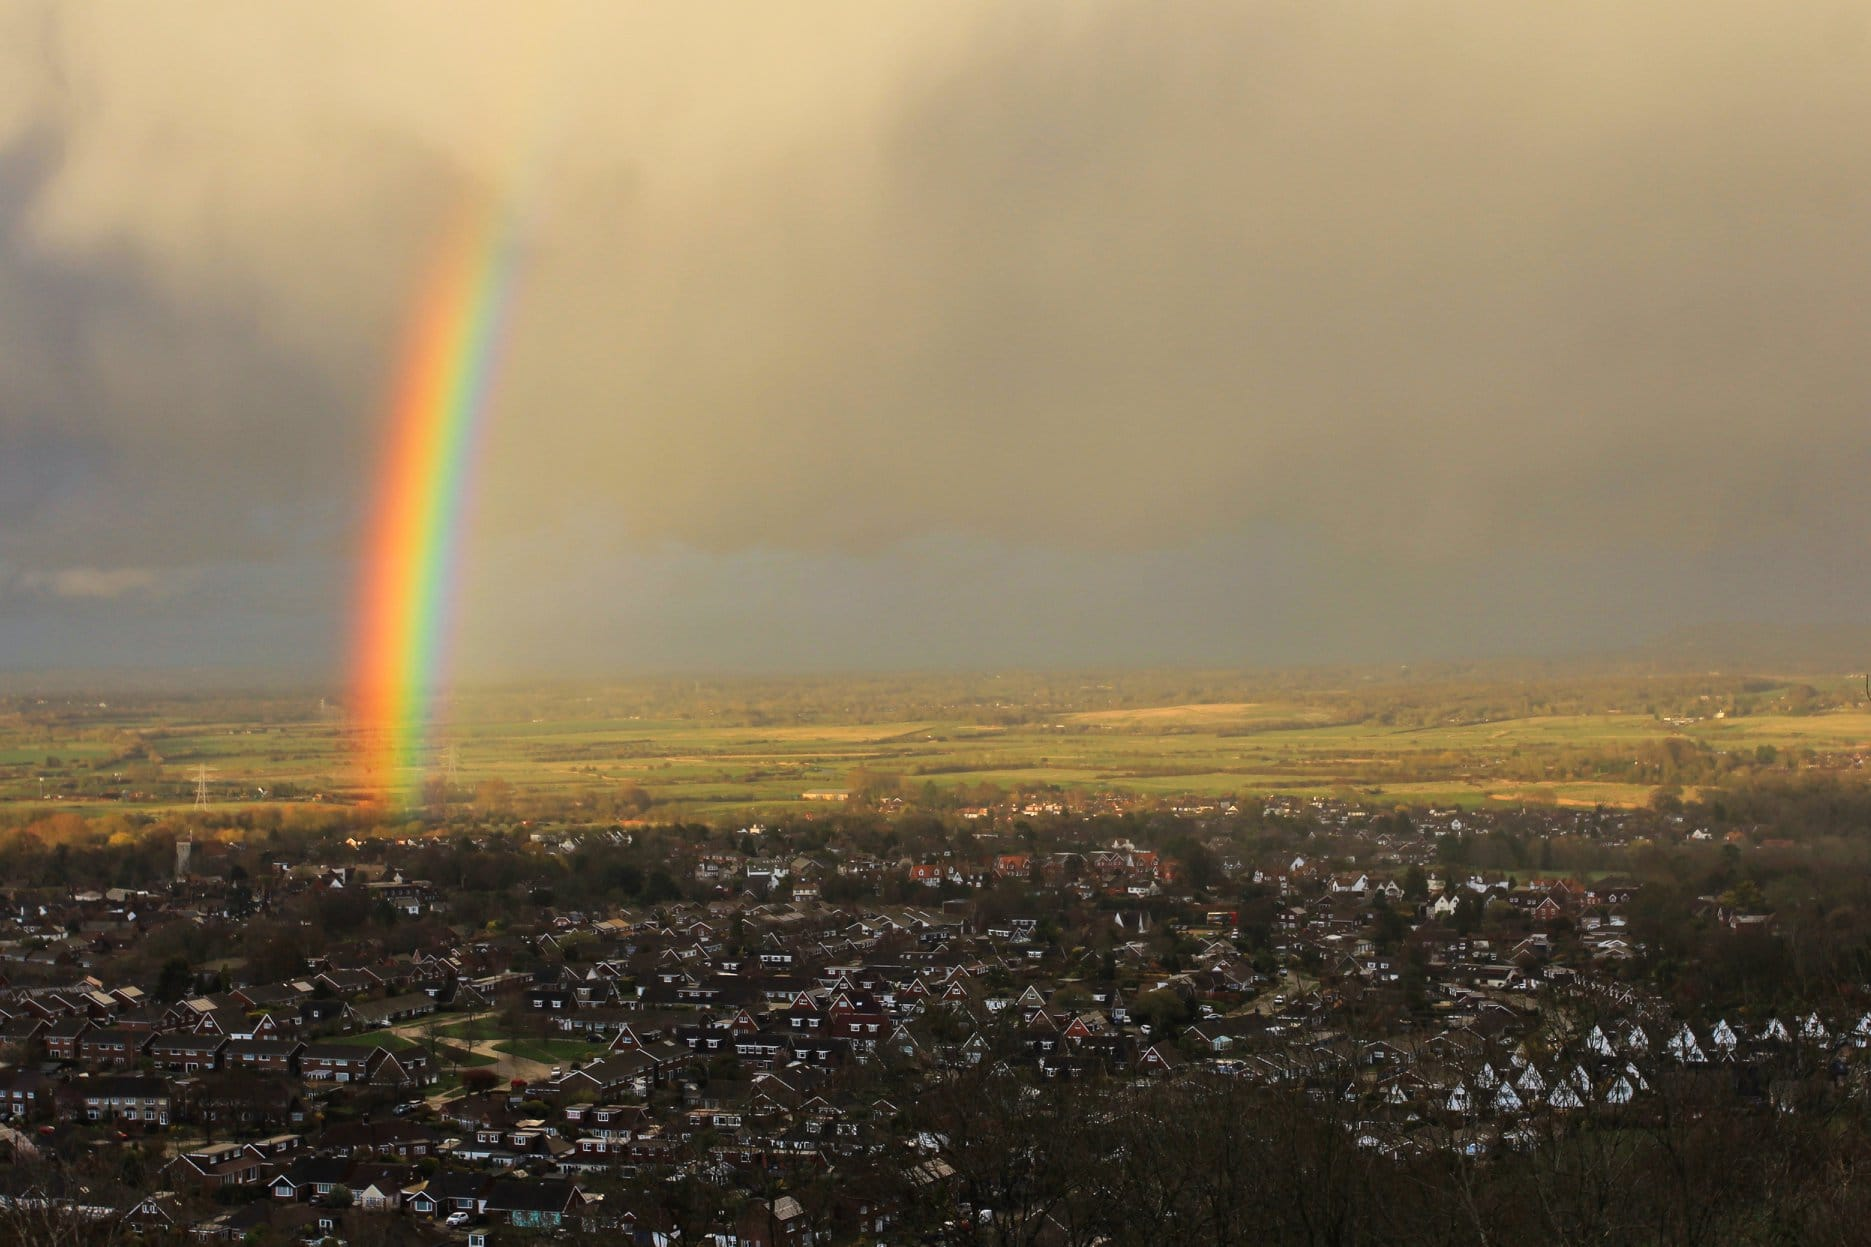 Rainbow over Steyning